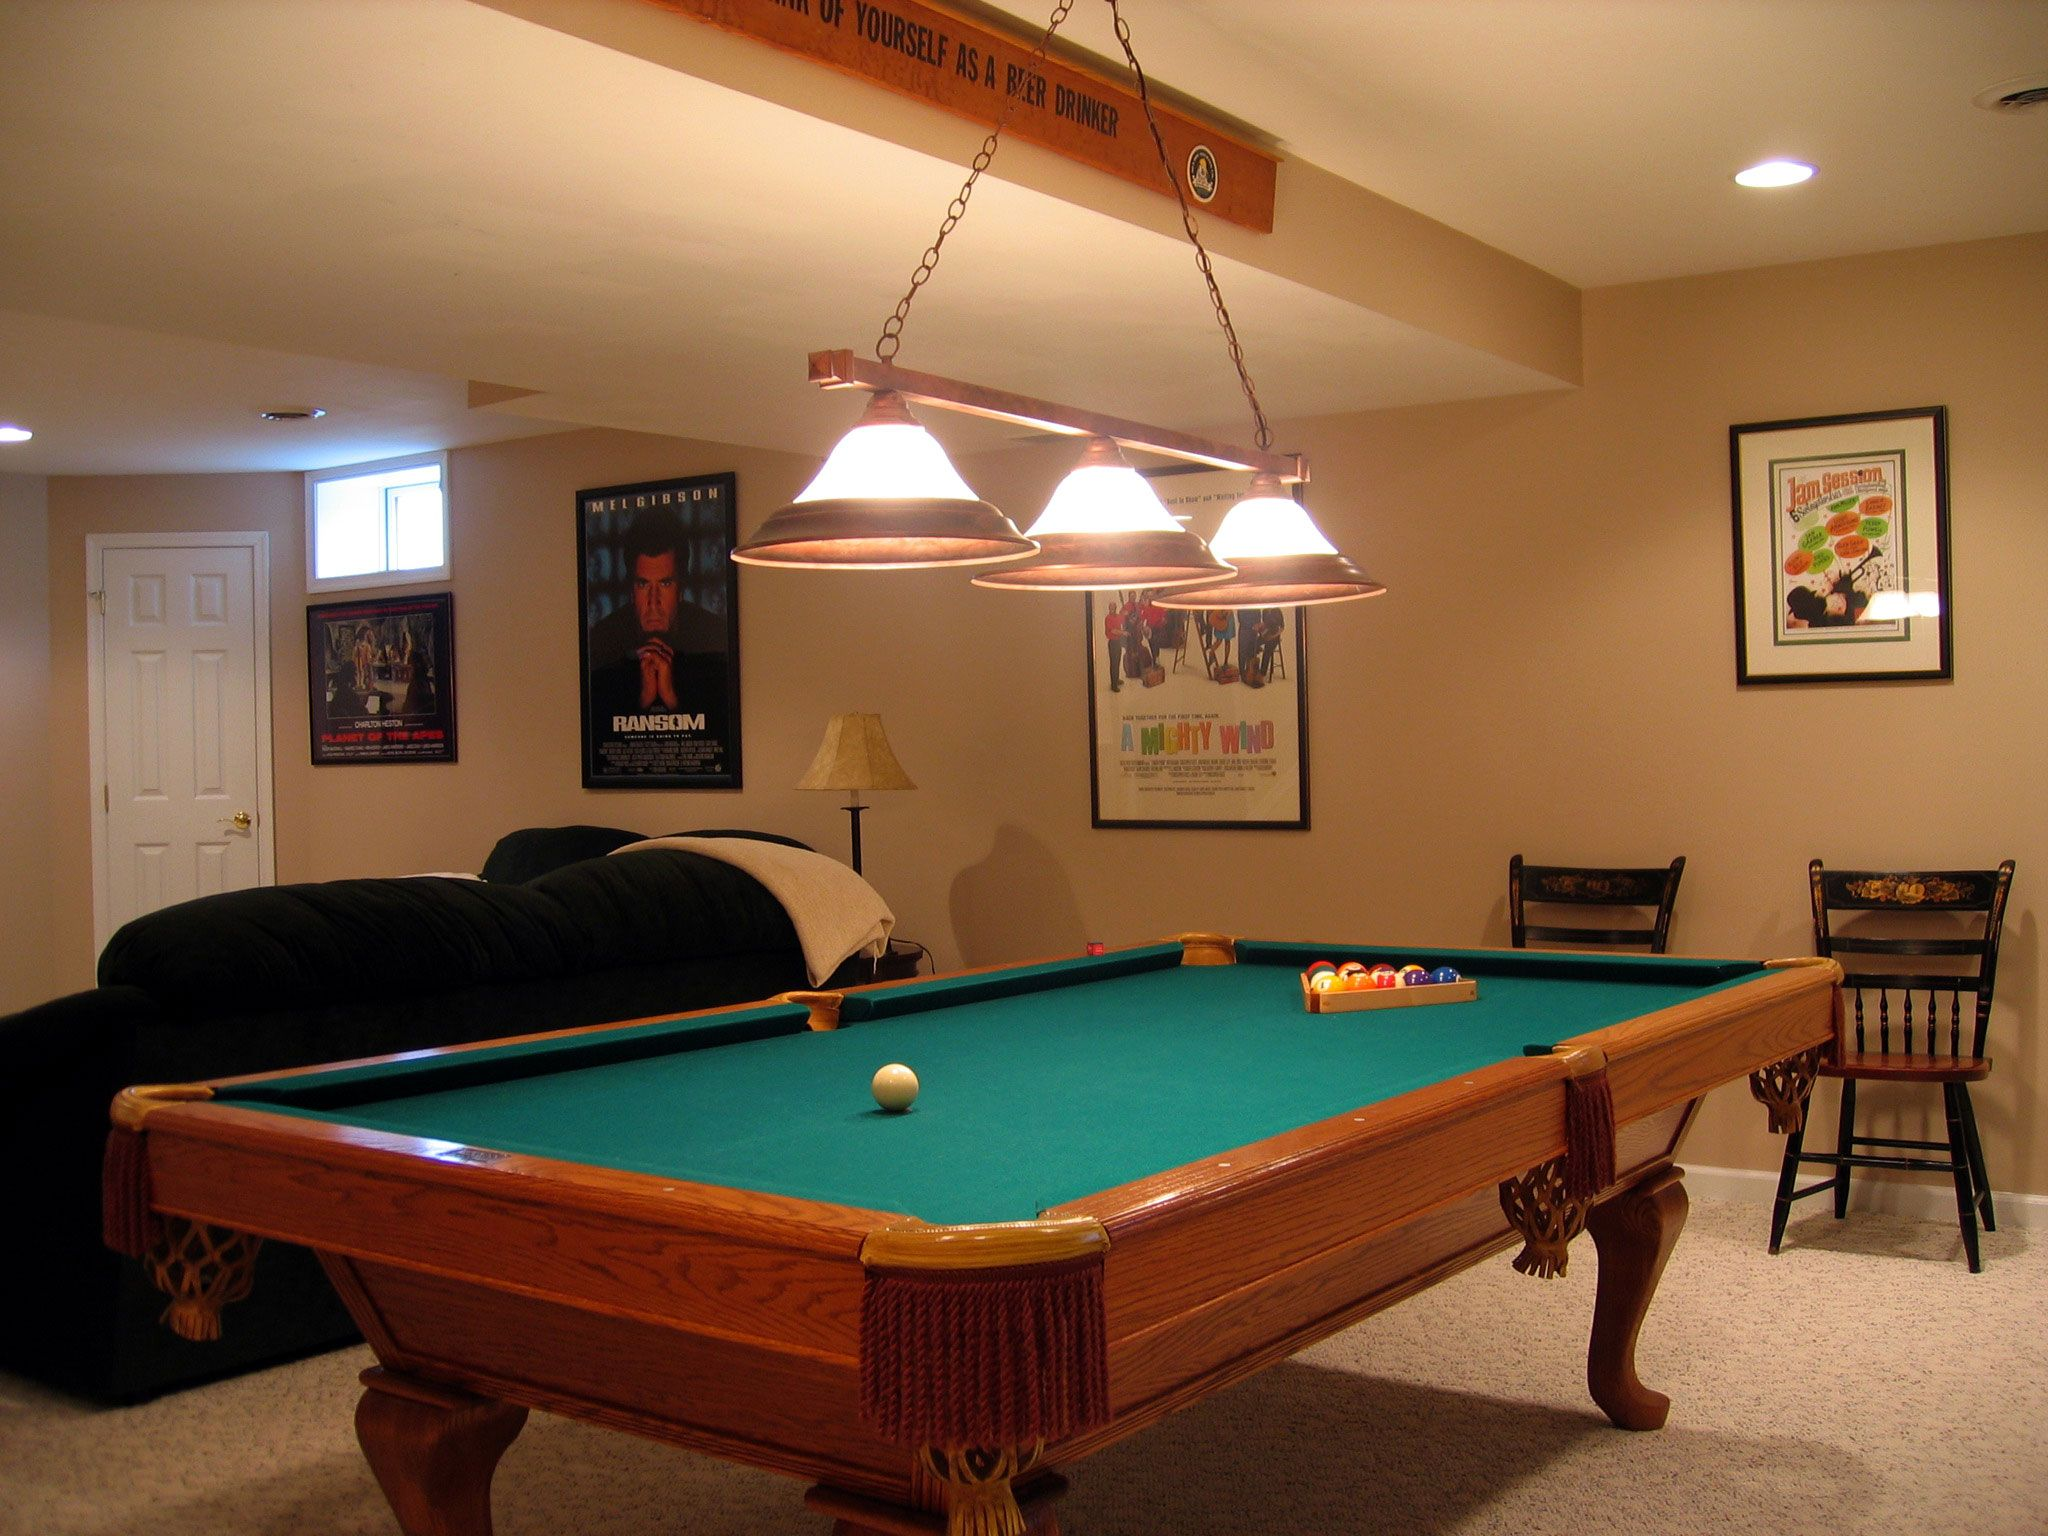 Best Photos Images And Pictures Gallery About Pool Table Room Ideas Pool Table Room Ideas Man Caves Pool T Pool Table Room Room Layout Living Room Table